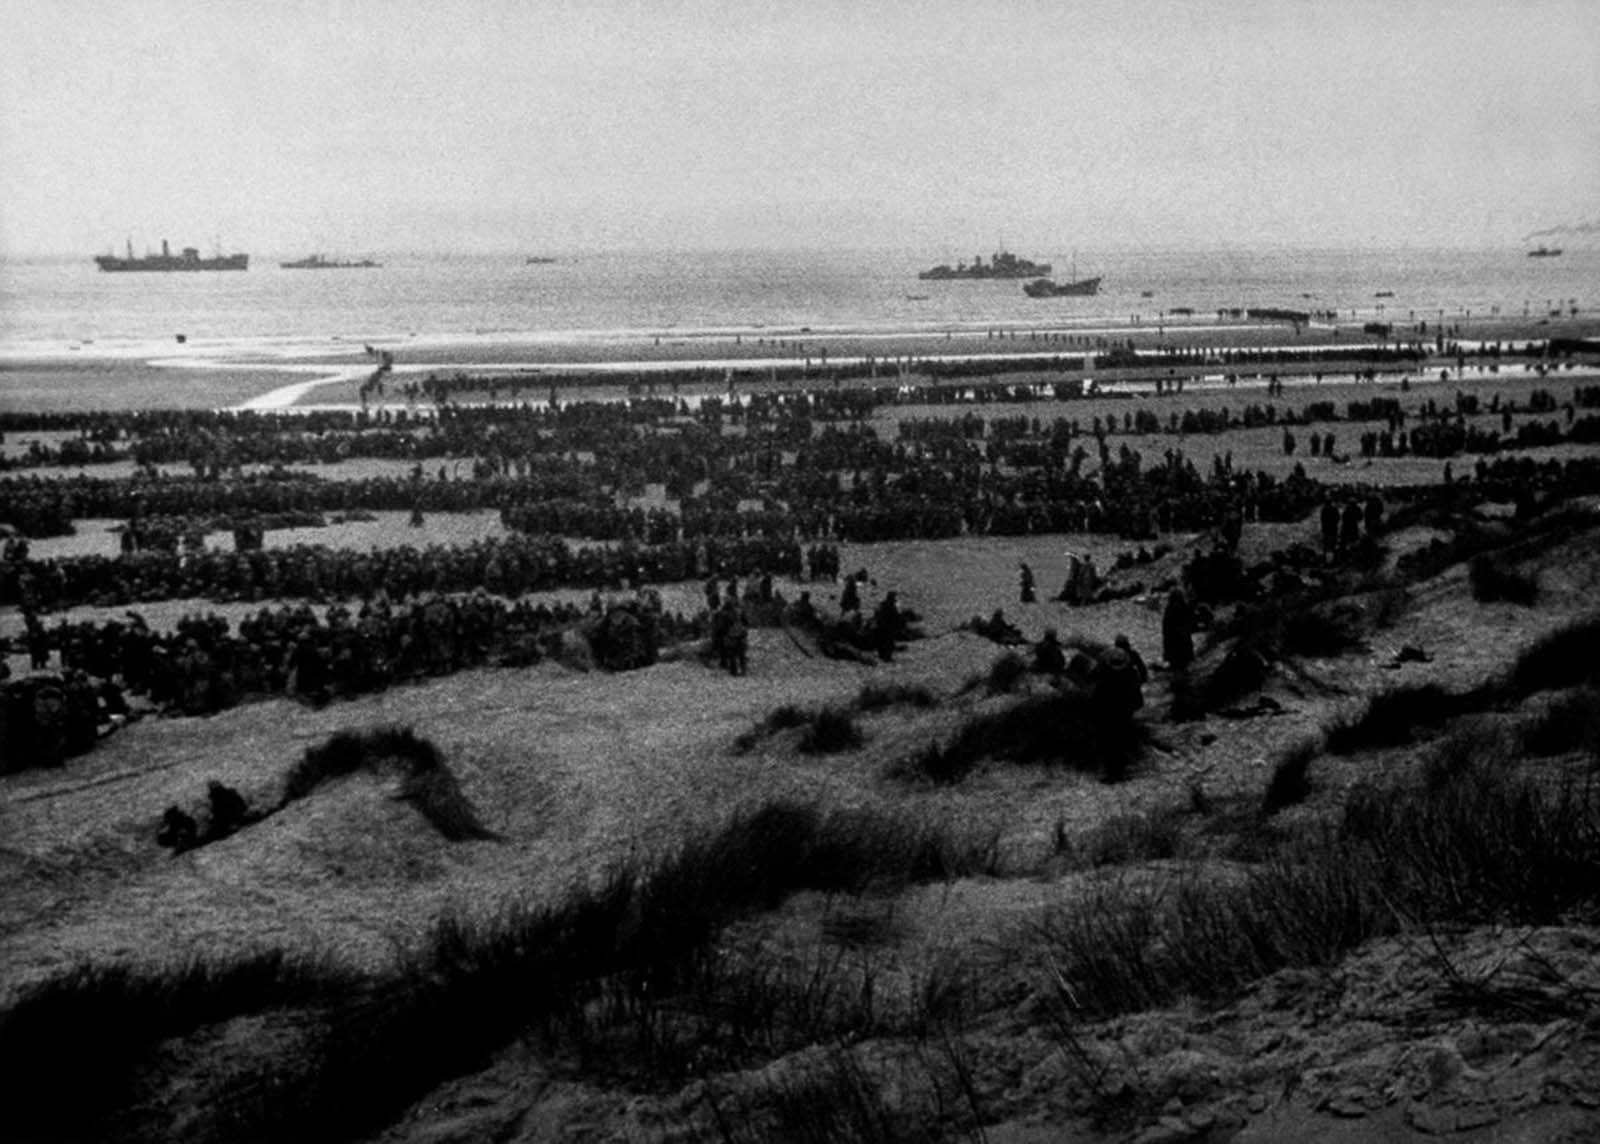 British Expeditionary Forces queue up on the beach at Dunkirk to await evacuation.